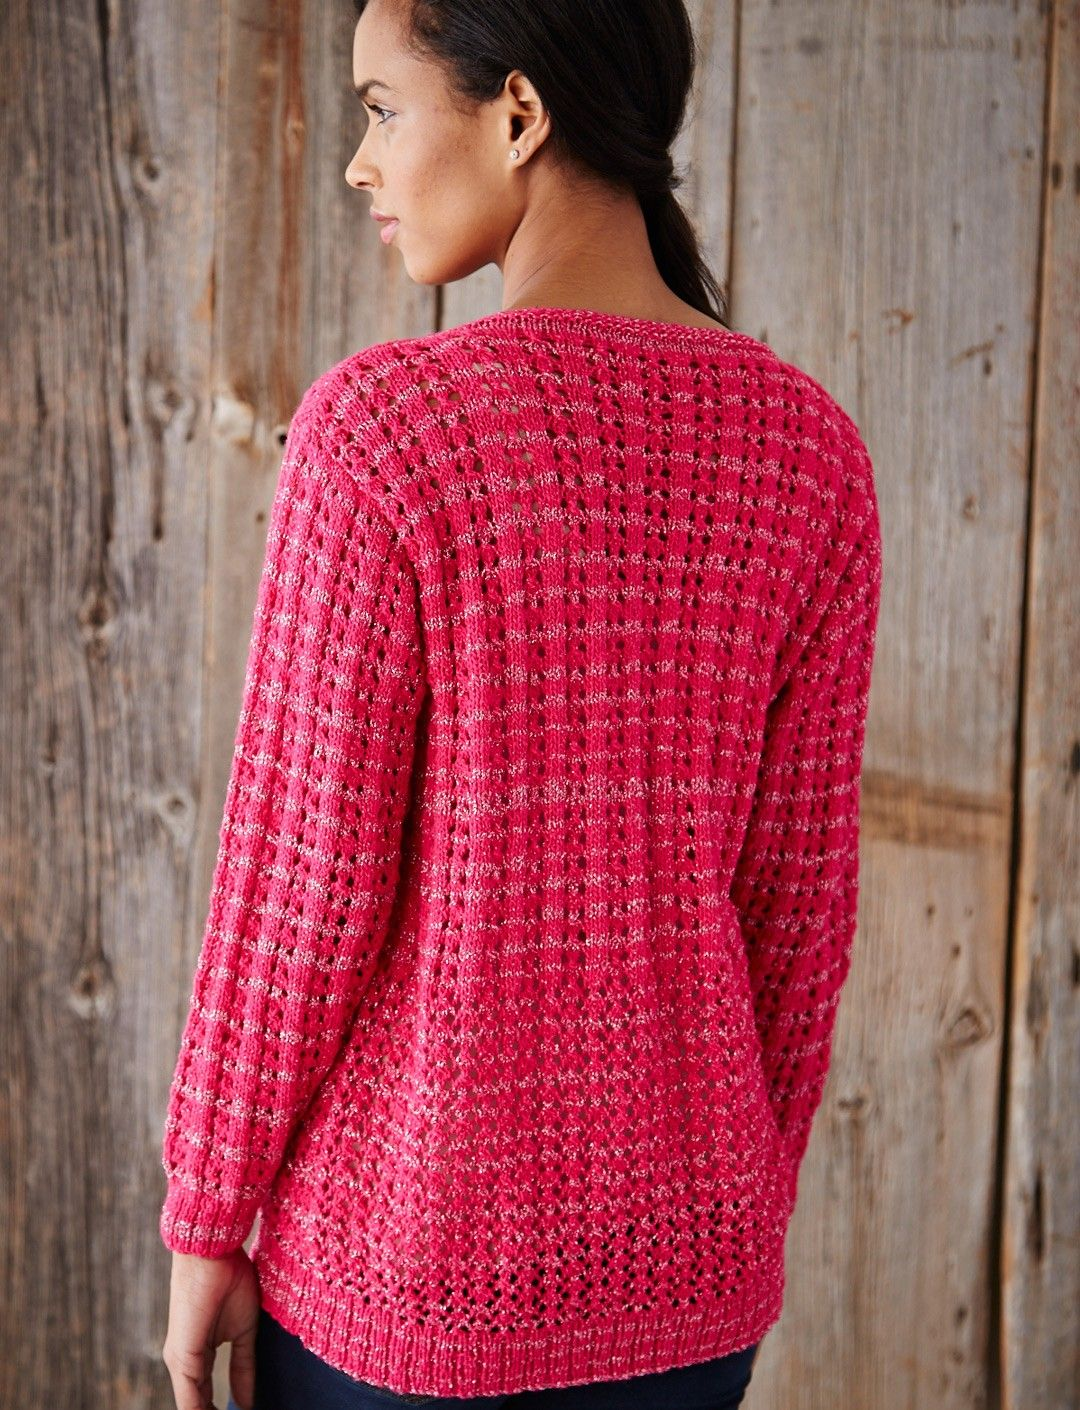 Yarnspirations.com - Patons Mixed Stitch Cardigan - Patterns ...